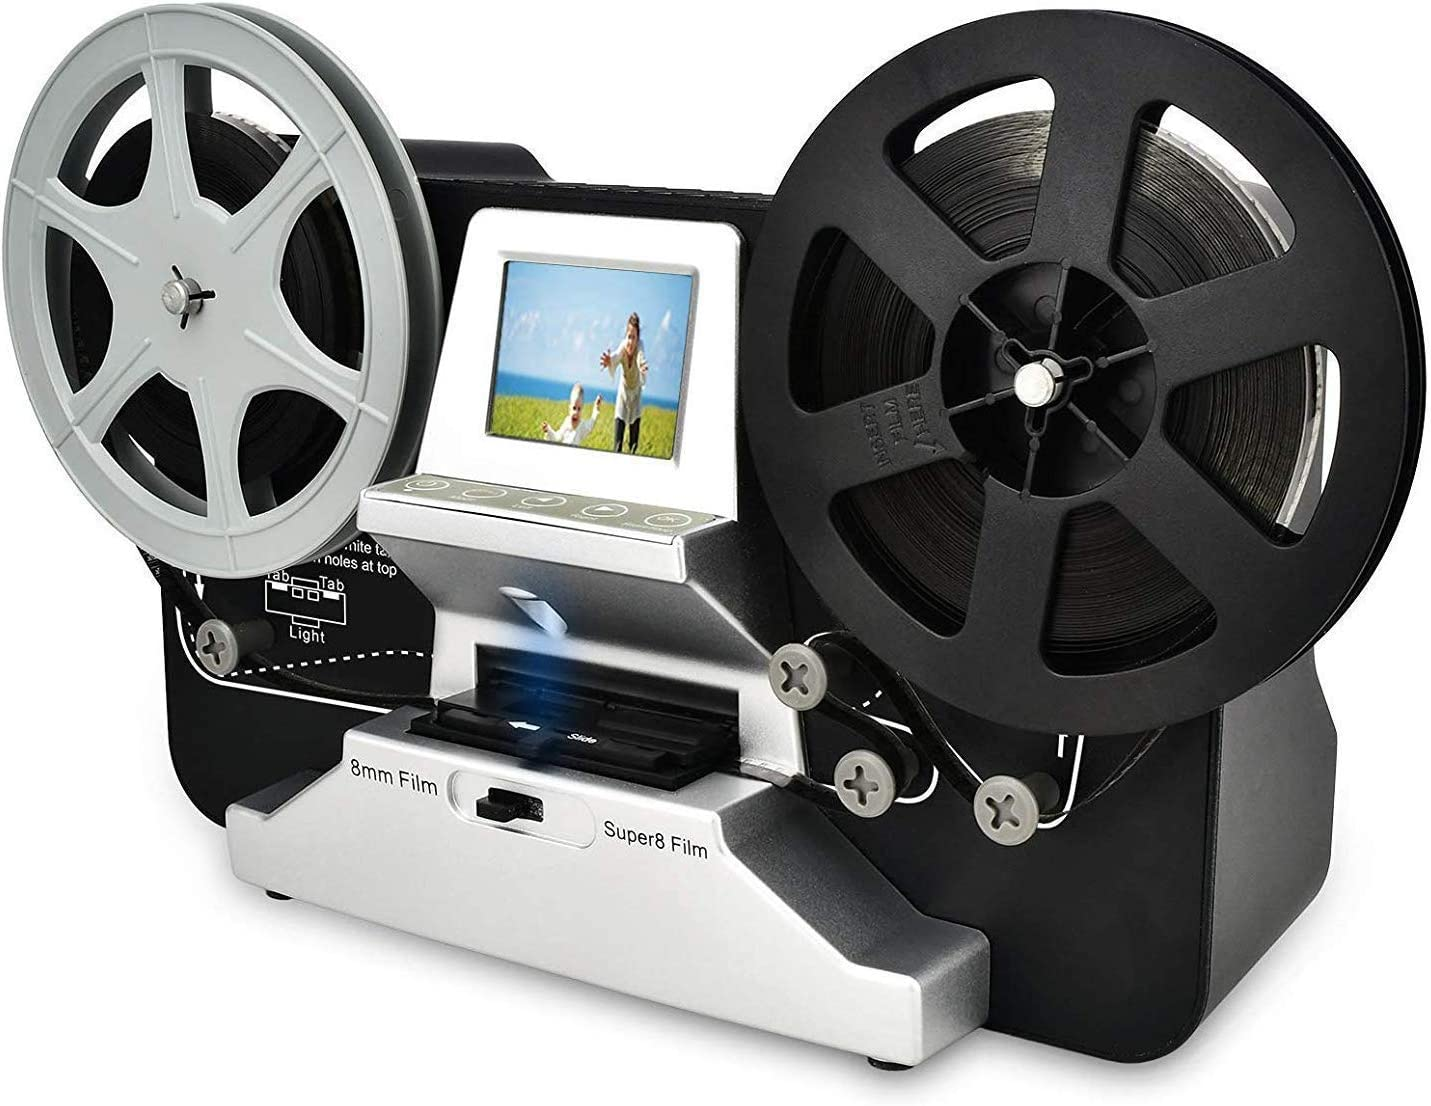 """8mm & Super 8 Reels to Digital MovieMaker Film Sanner Converter, Pro Film Digitizer Machine with 2.4"""" LCD, Black (Convert 3 inch and 5 inch 8mm Super 8 Film reels into Digital) with 32 GB SD Card"""